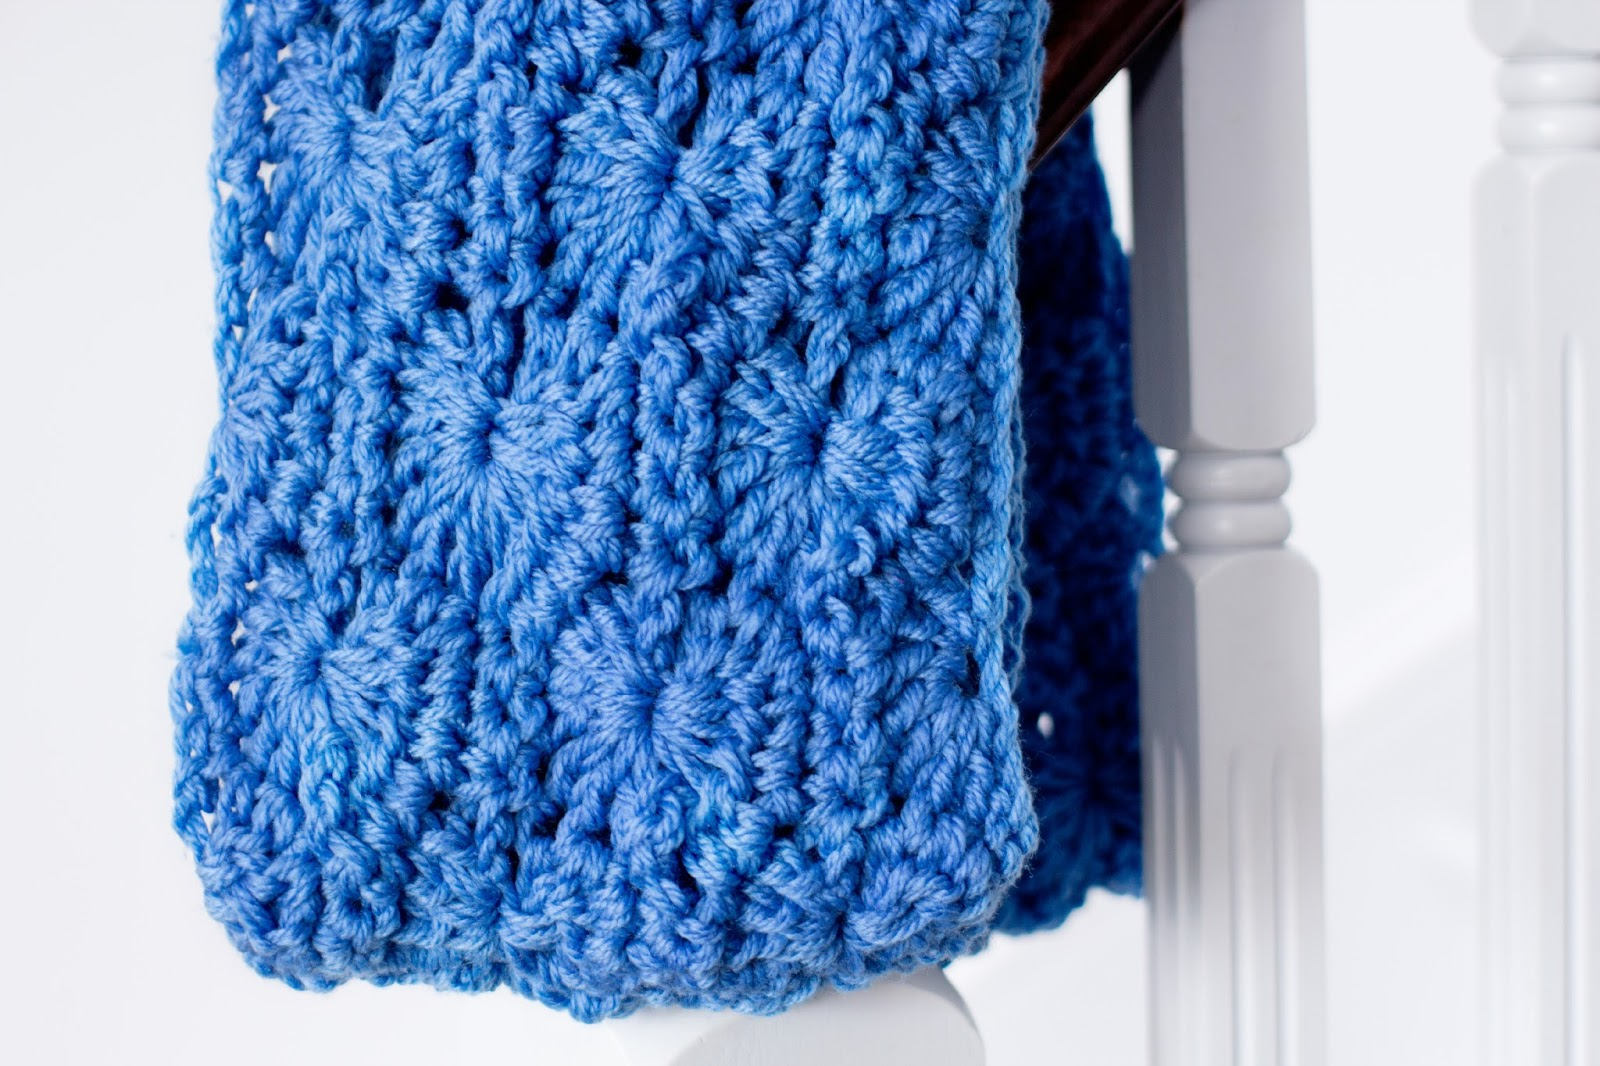 Www Crochet : ... Craft, Crochet, Create: A Unique Gift ~ Infinity Scarf Crochet Pattern